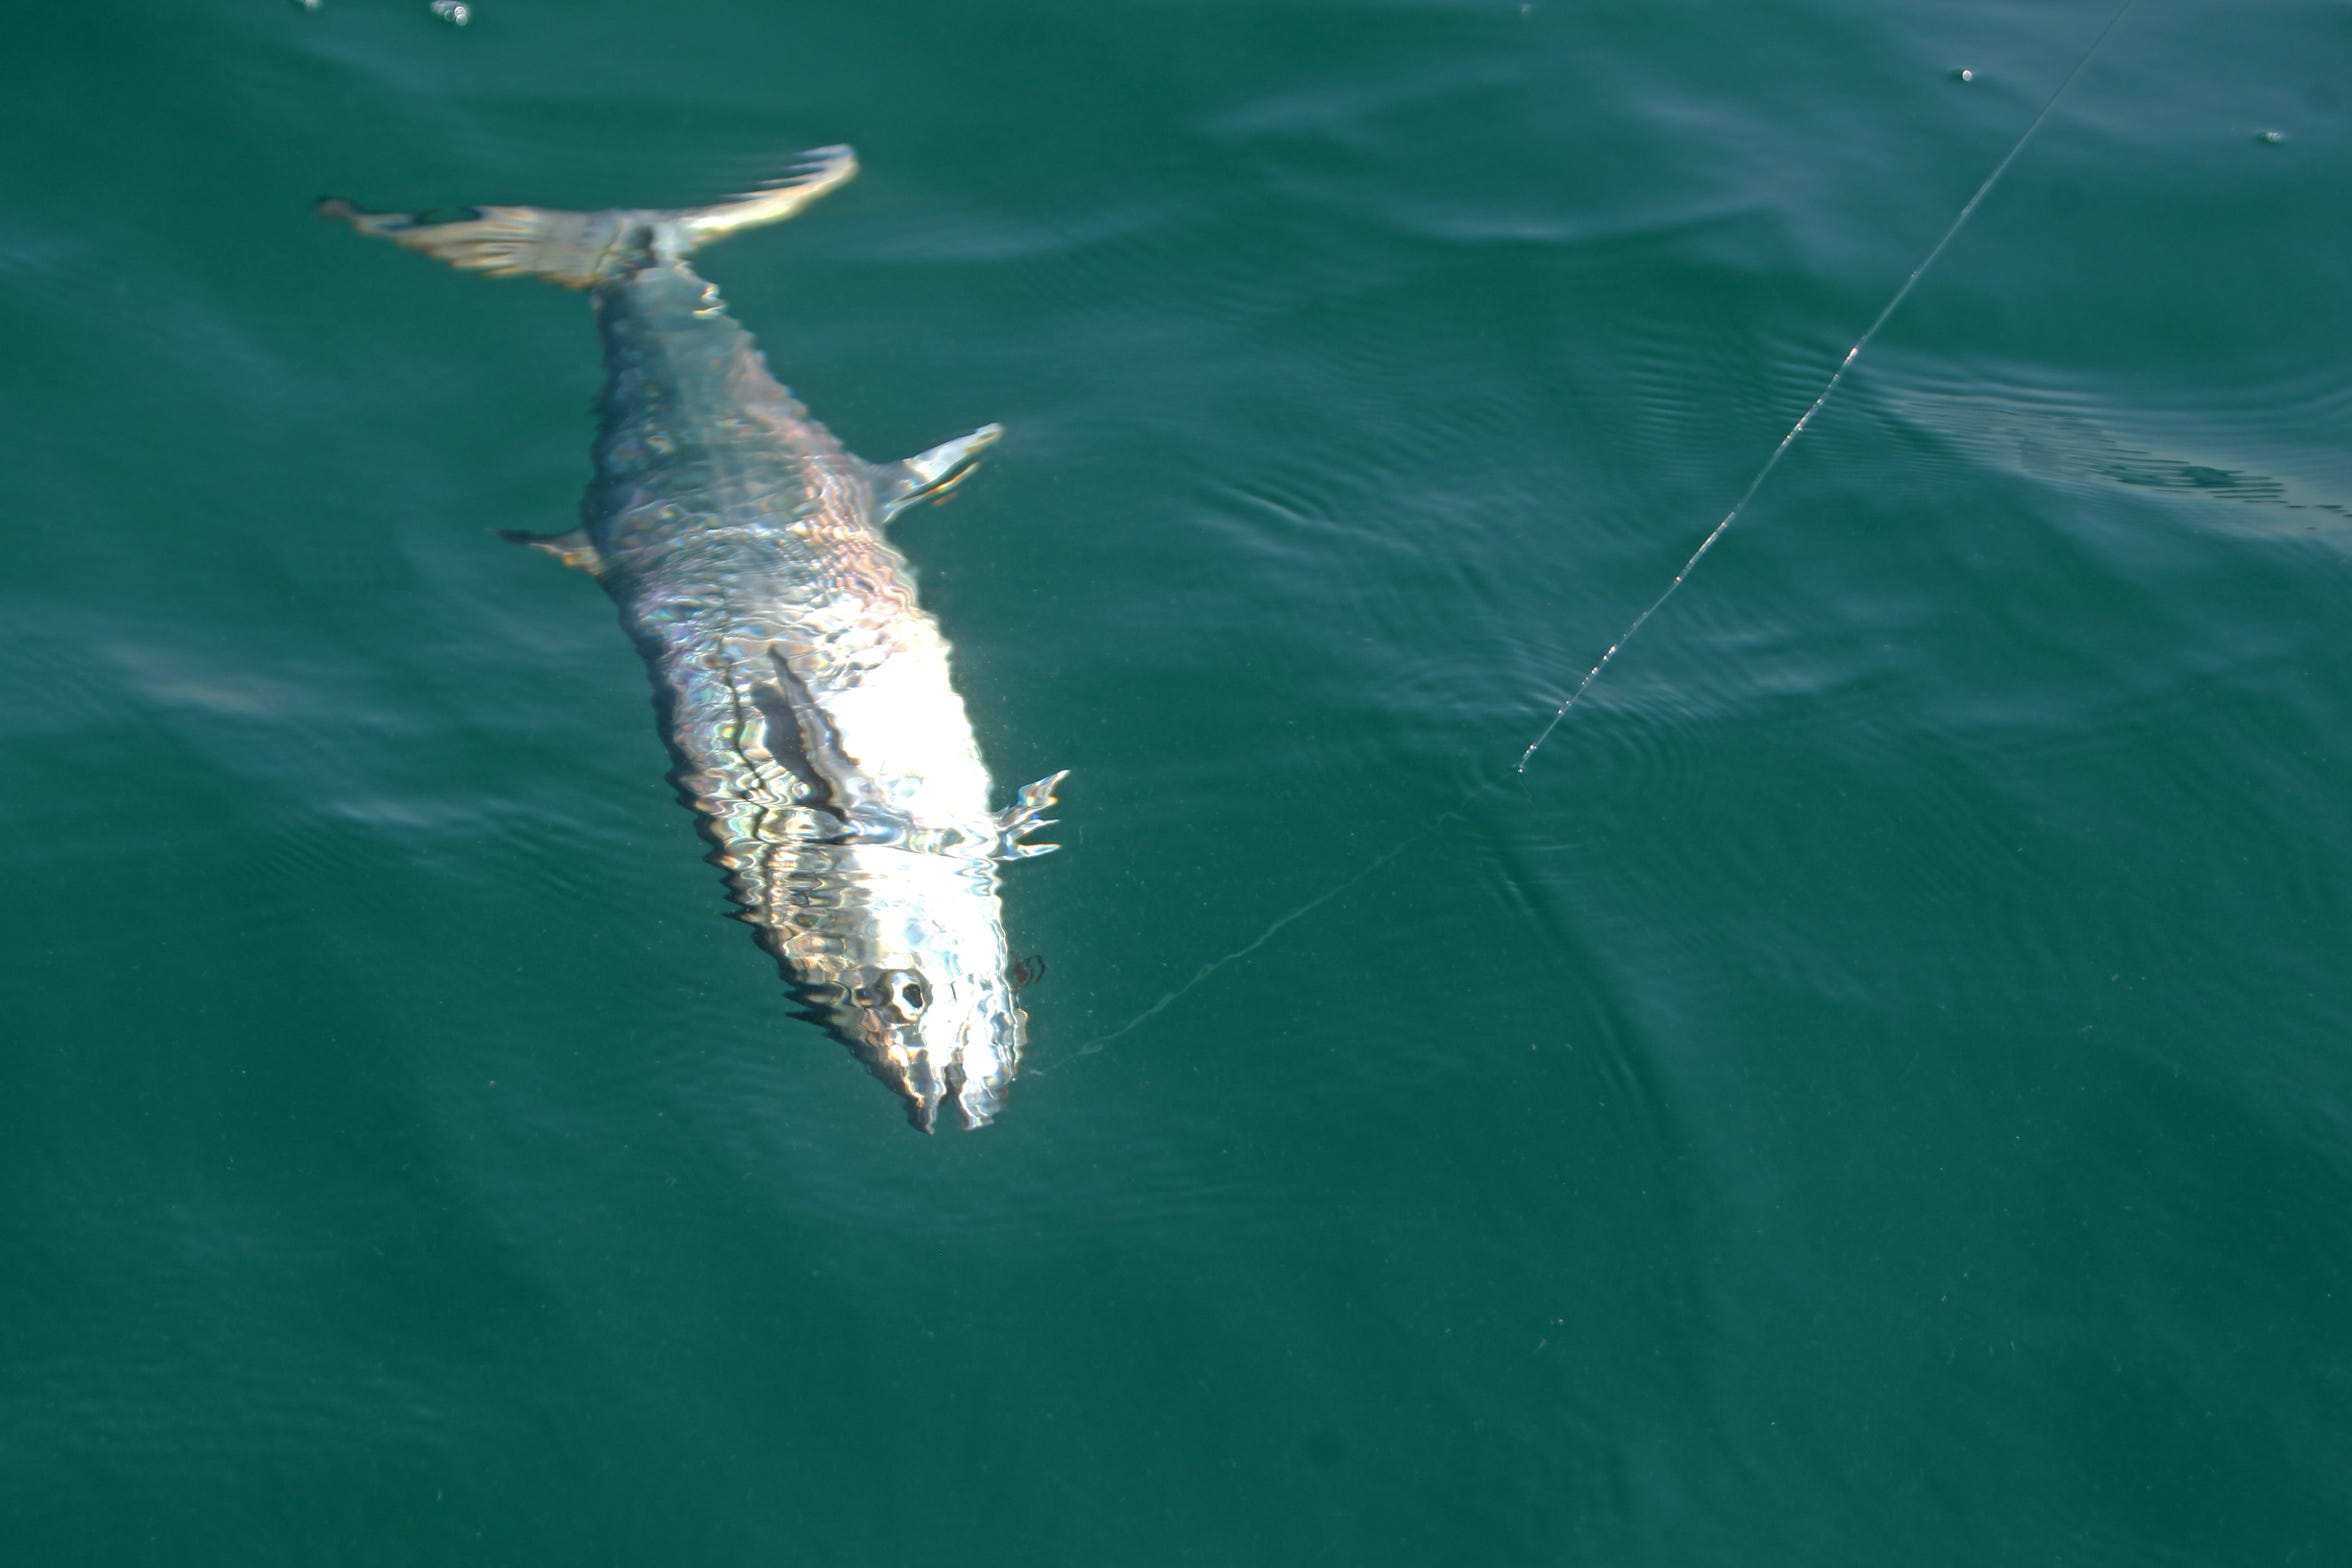 Kingfish have been within a mile of the beaches during calm mornings.